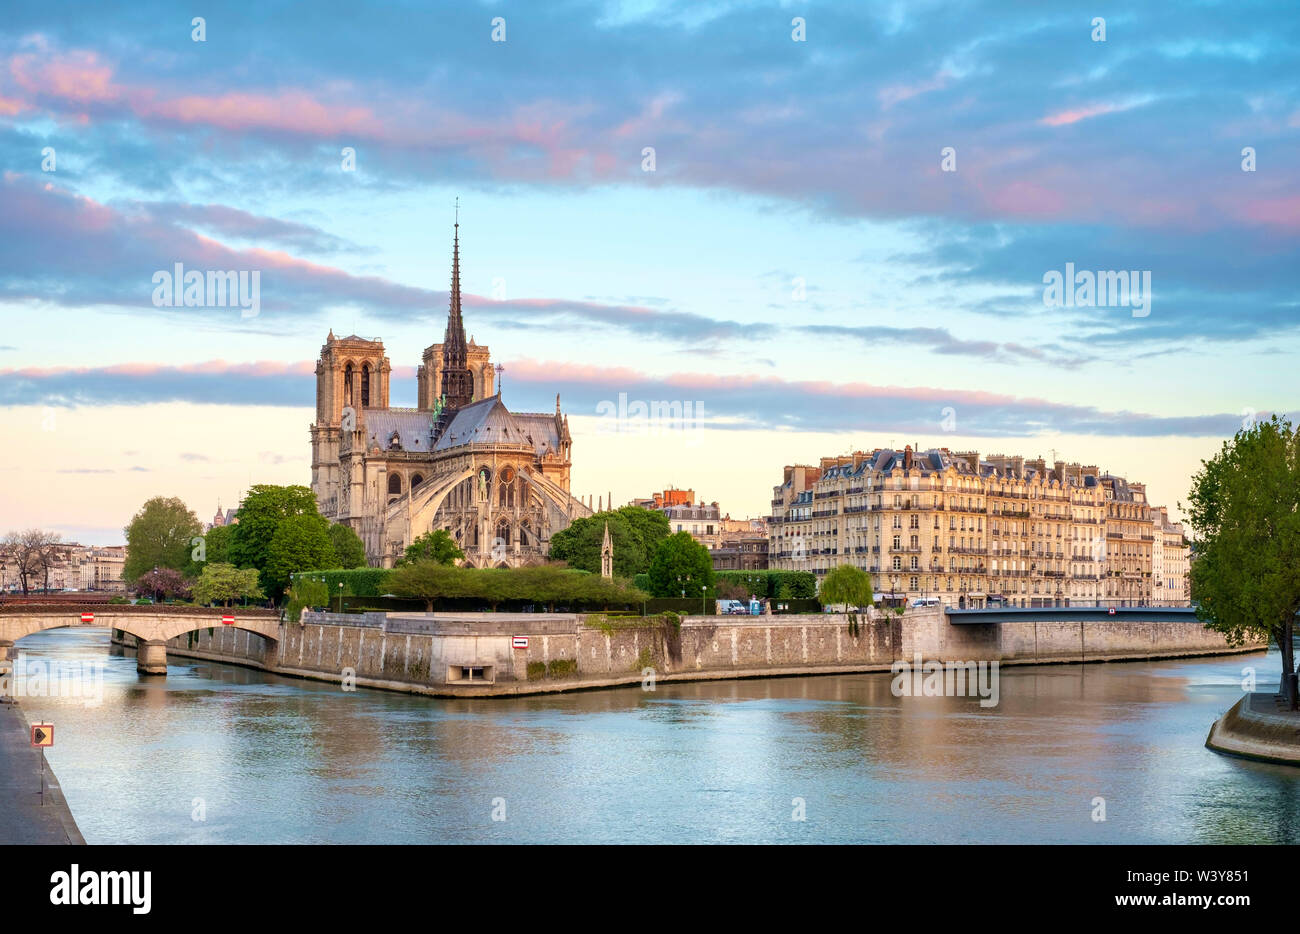 Notre Dame Cathedral on the banks of the Seine River at sunrise, Paris, Île-de-France, France - Stock Image